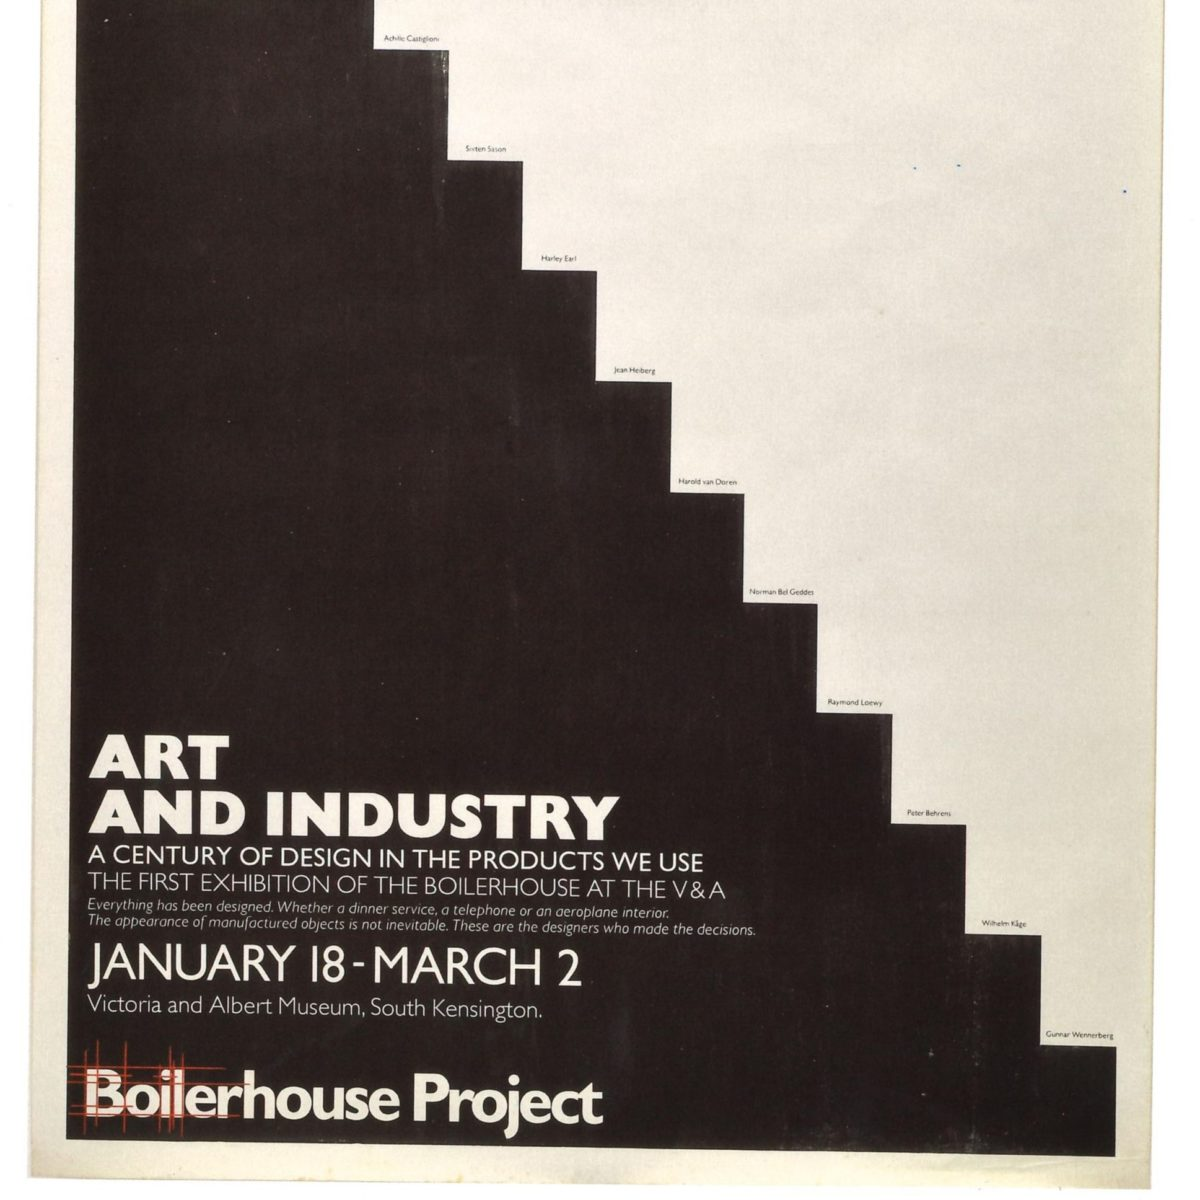 nvitation from the Conran Foundation and its debut initiative The Boilerhouse. Source: My Life In Design   About Us 1980s